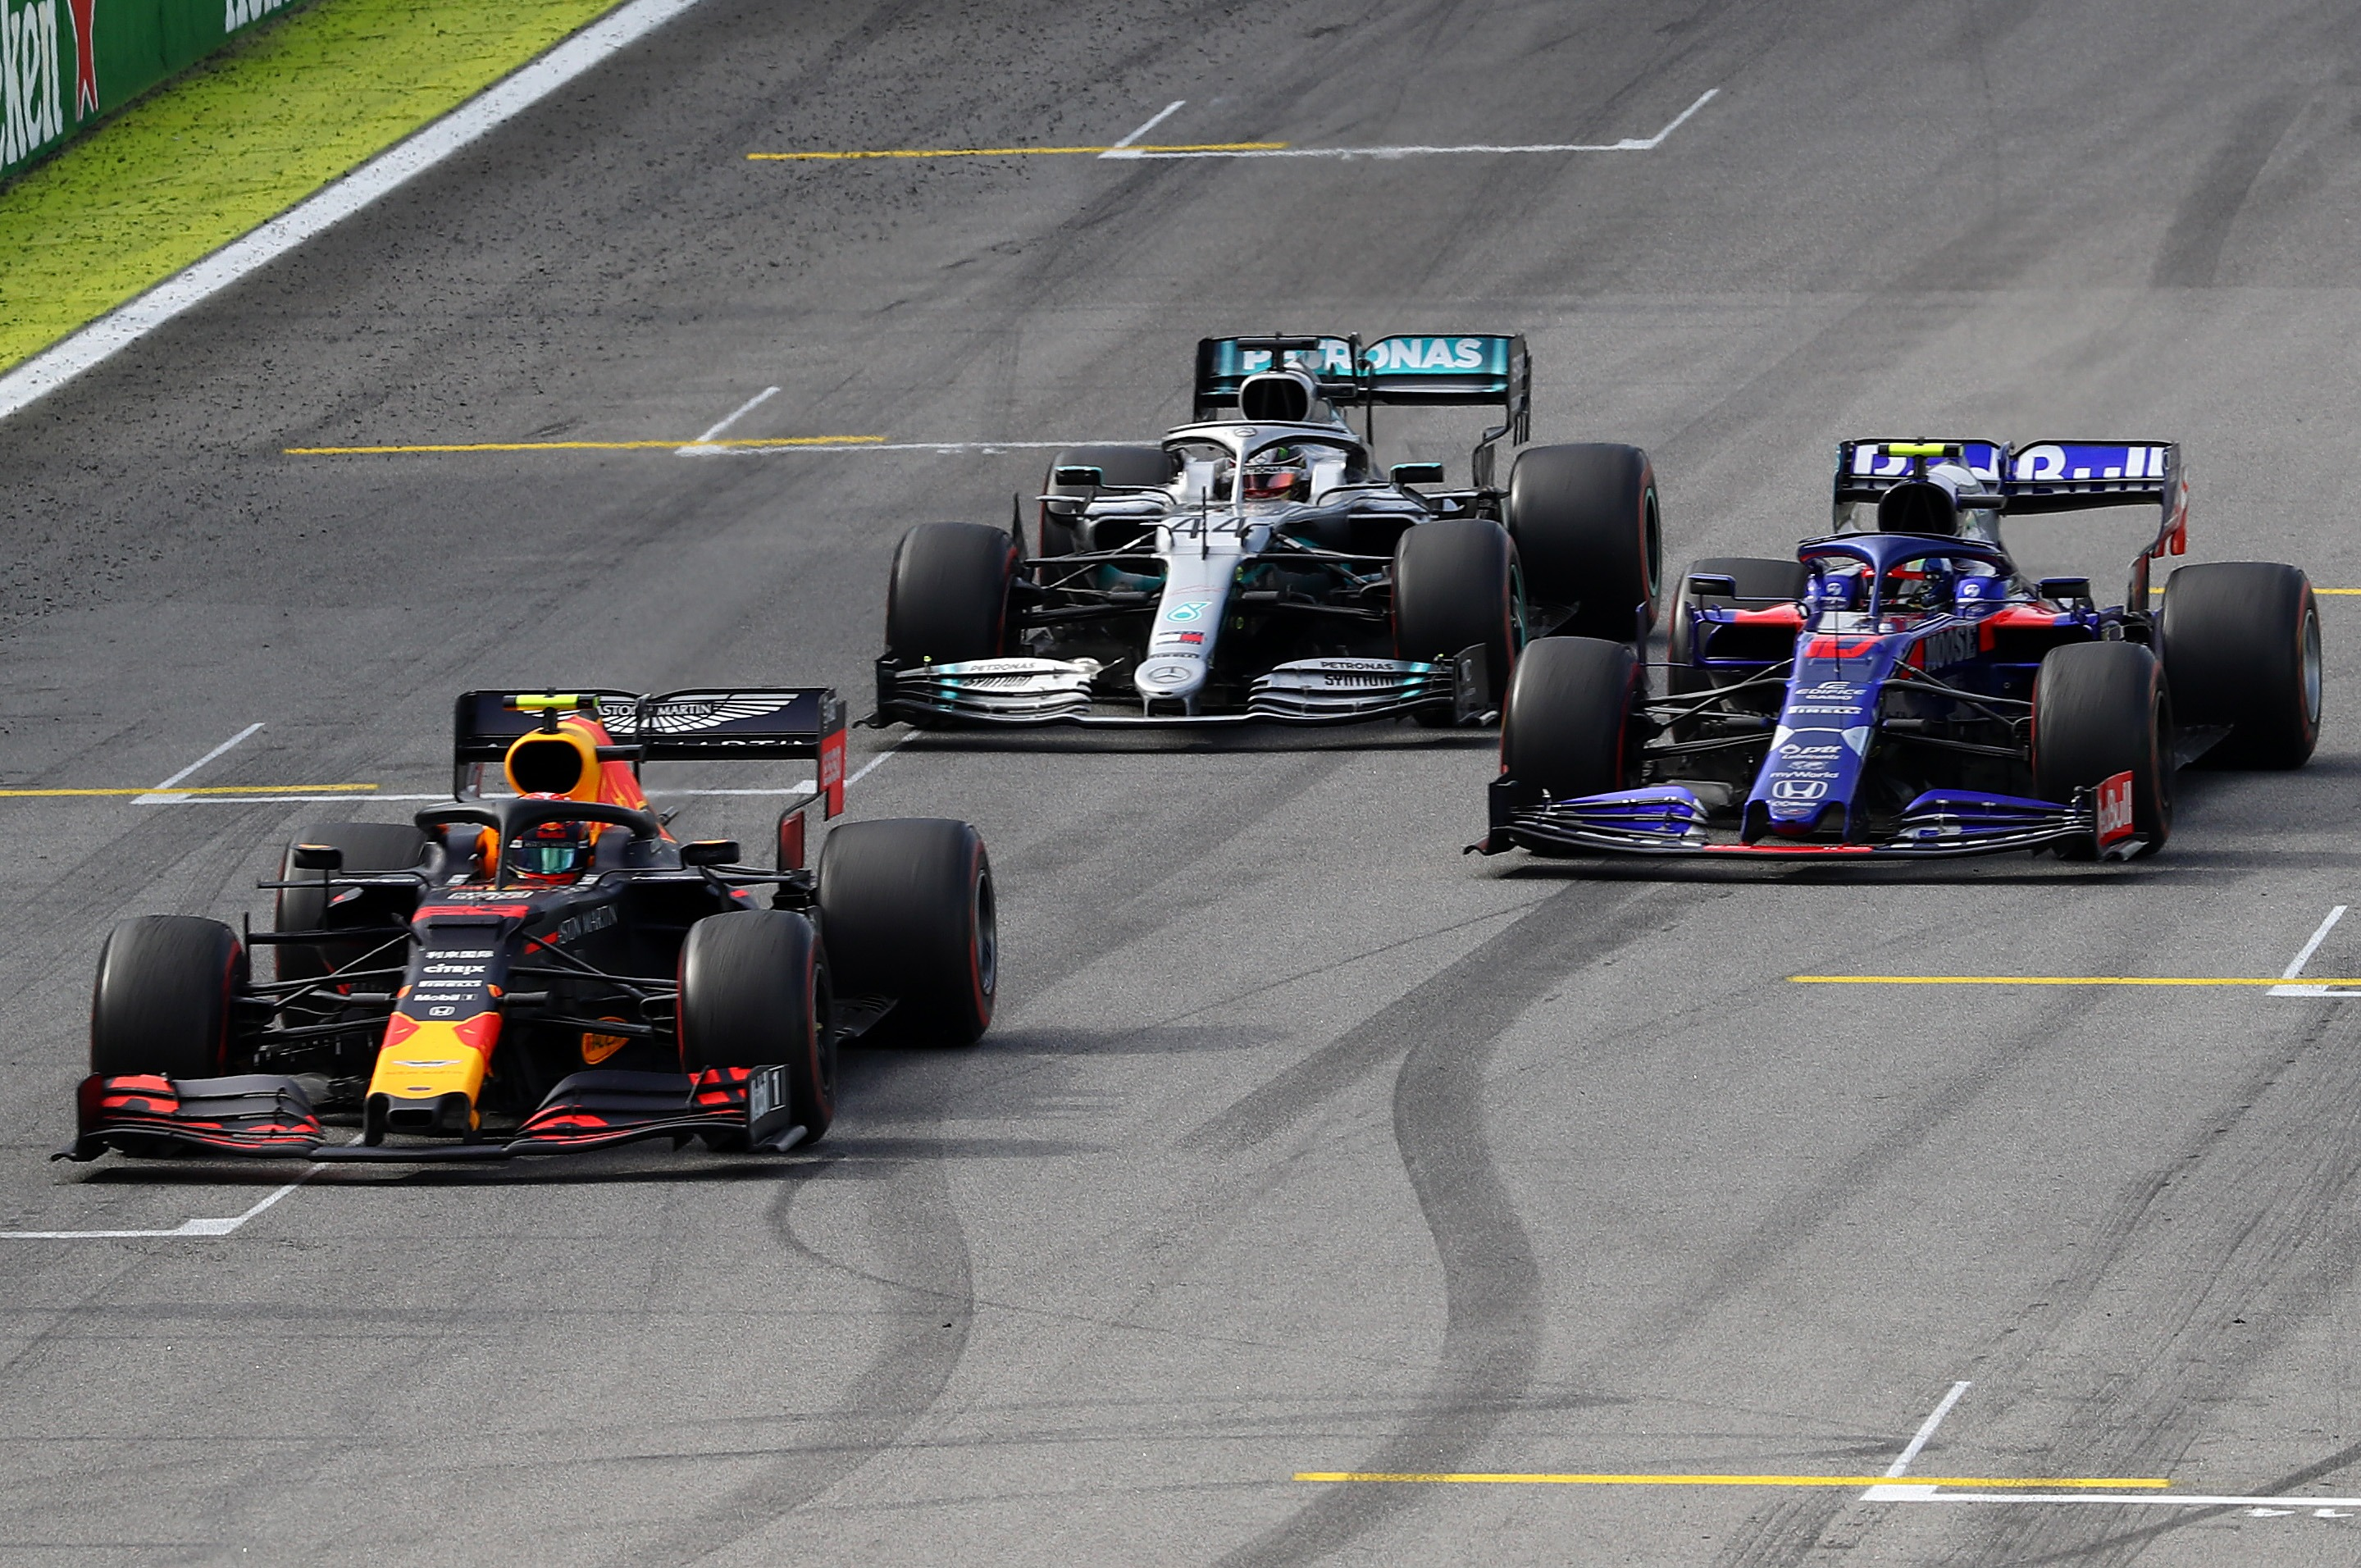 Mercedes & Honda asked for 'party mode' ban delay